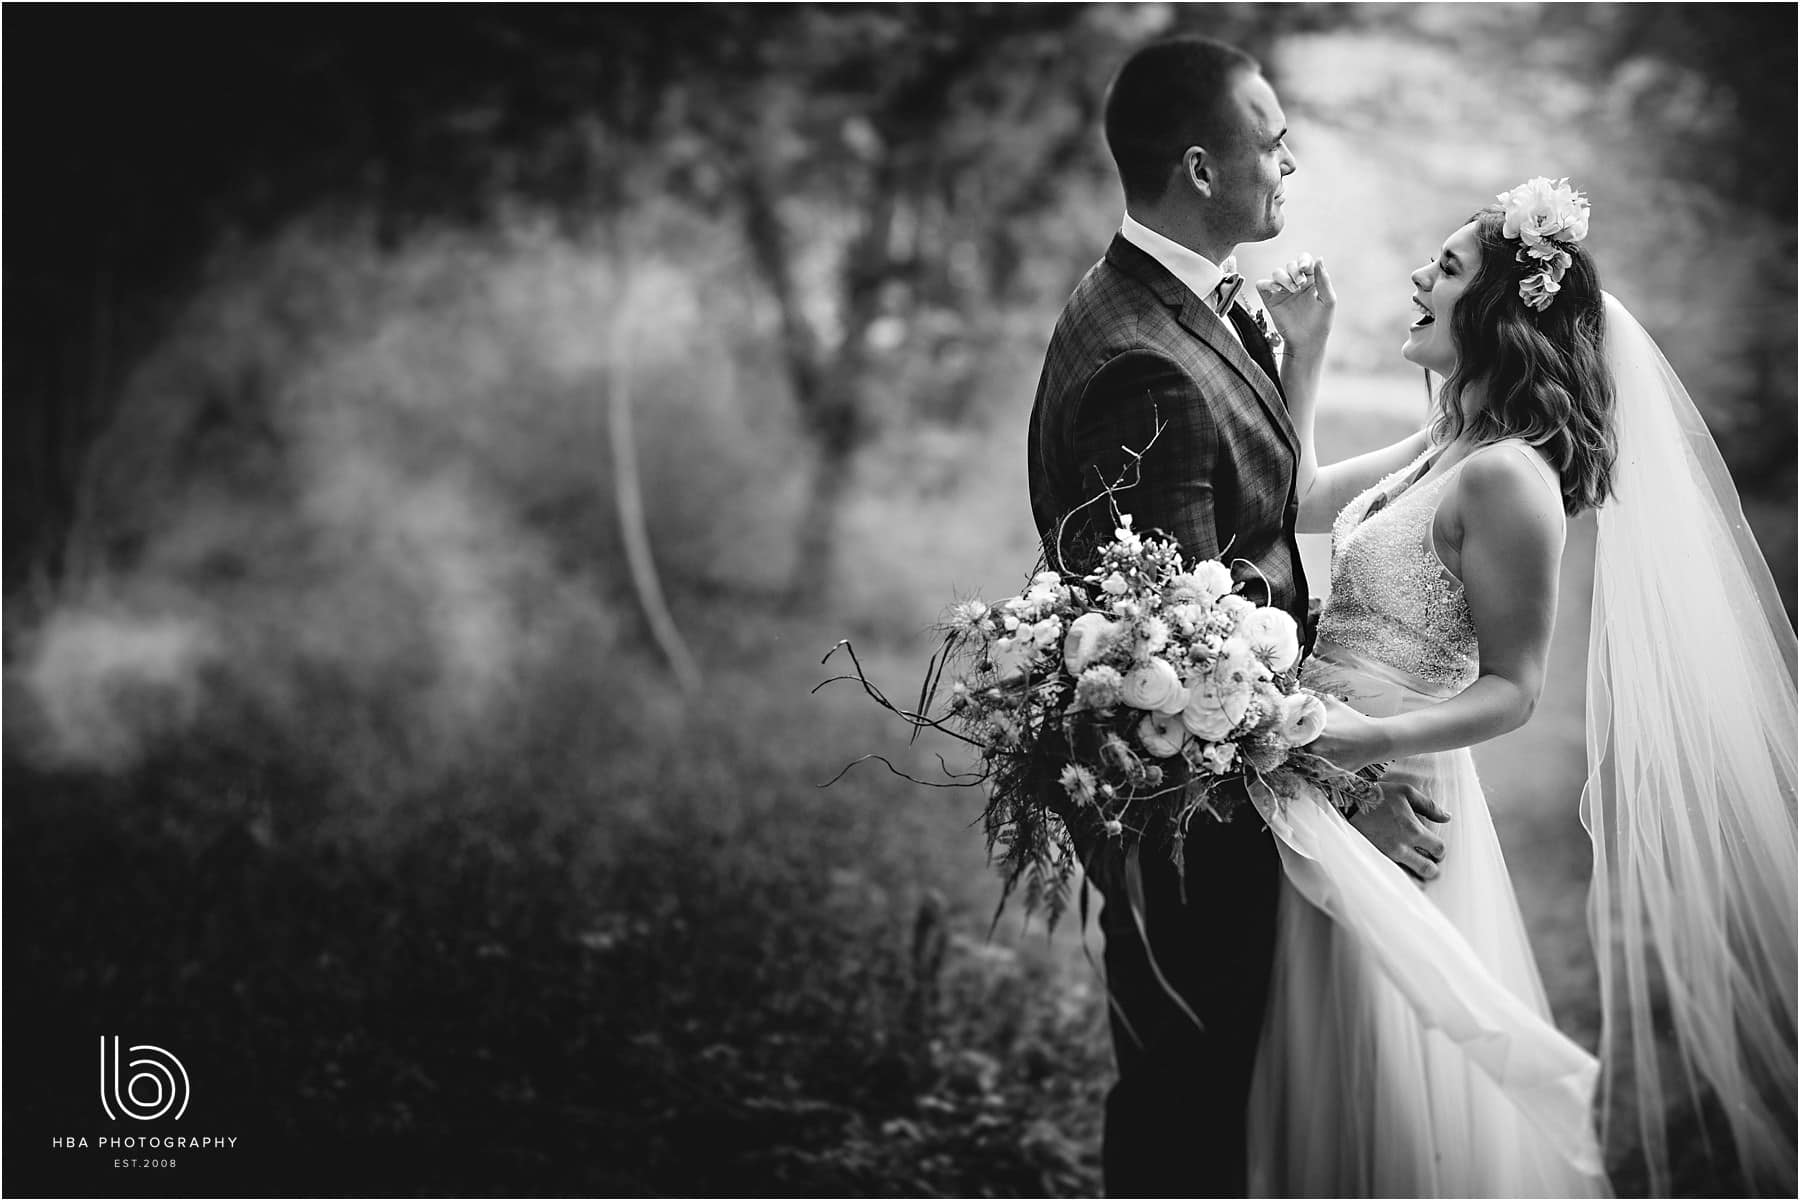 black and white bride and groom in the misty woods wedding day